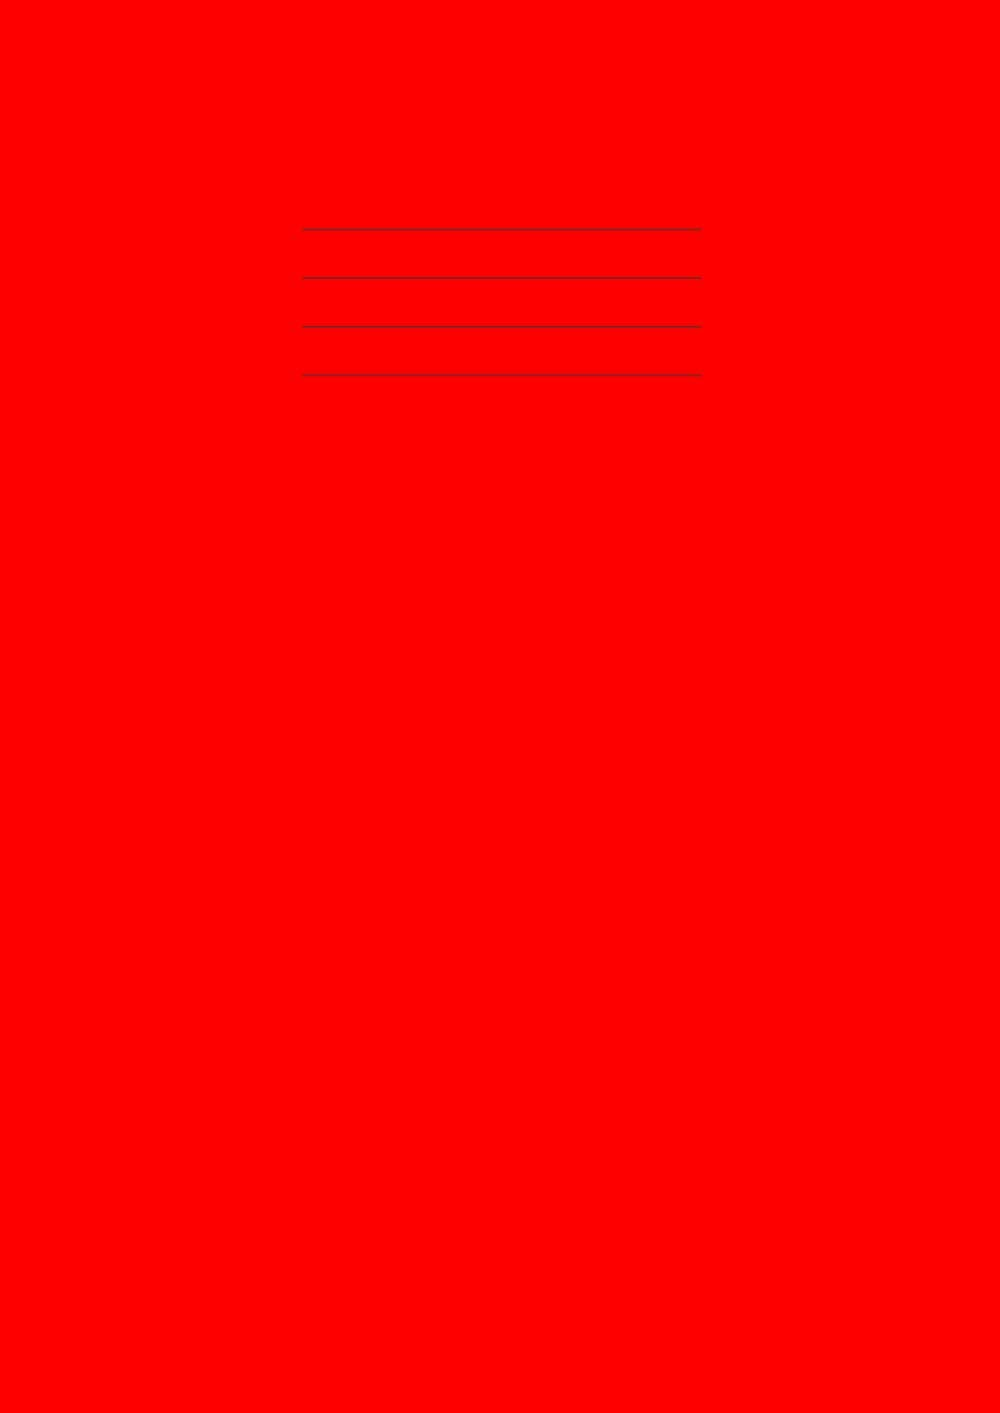 Maths Exercise Book: 10mm Squared Notebook A4, For Schools, 100 Pages, 90gsm Paper - Red